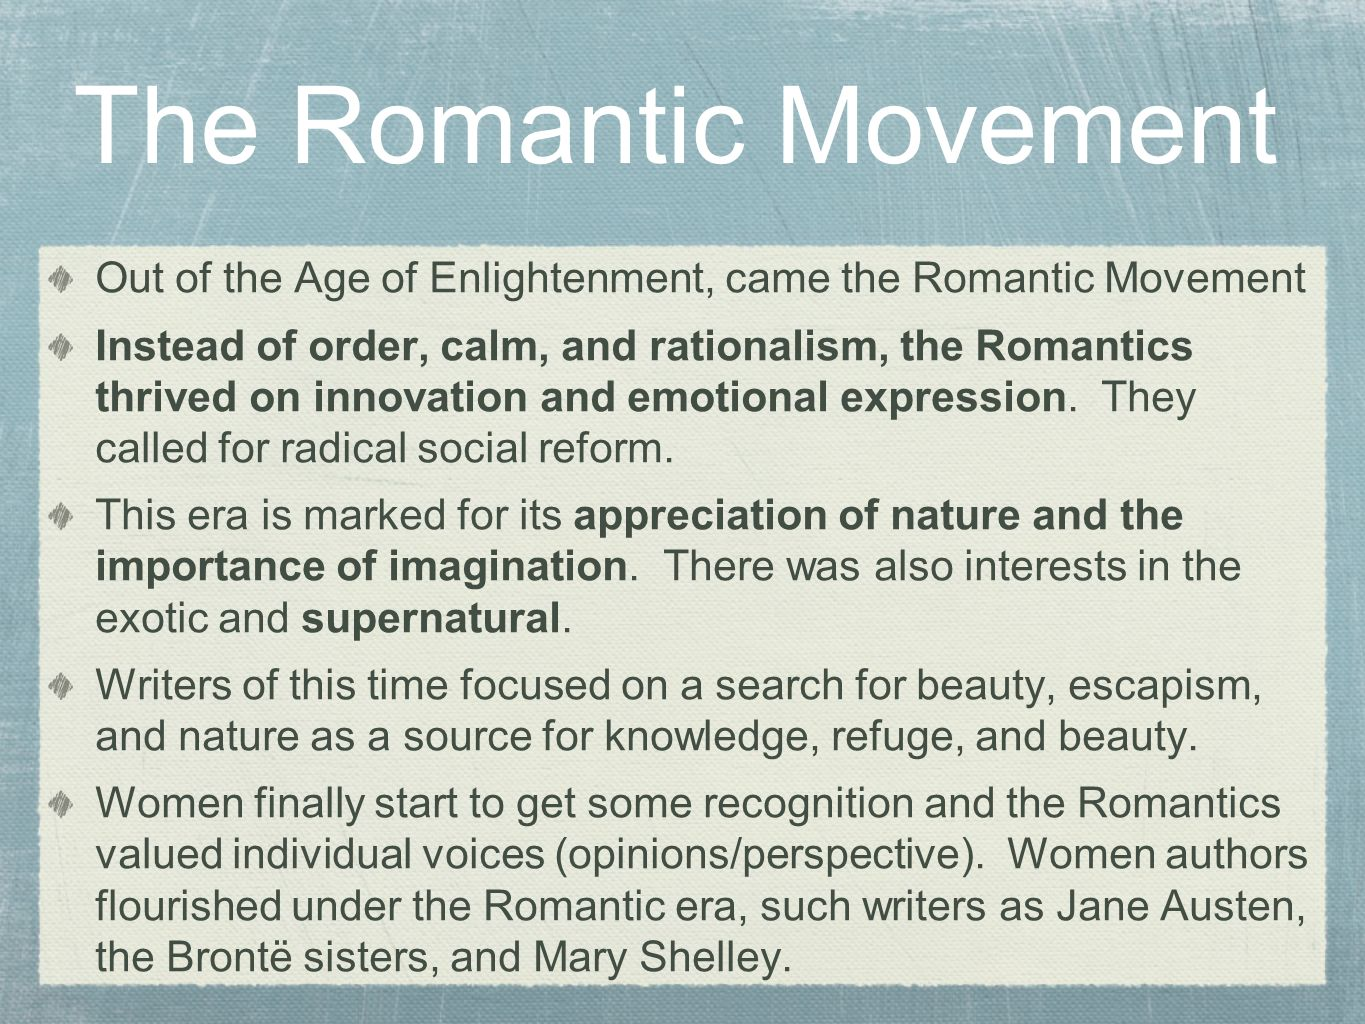 the romantic era and its goals Free college essay the romantic era and its goals in the late eighteenth century the european population began a radical philosophical revolution, later known as the romantic movement.